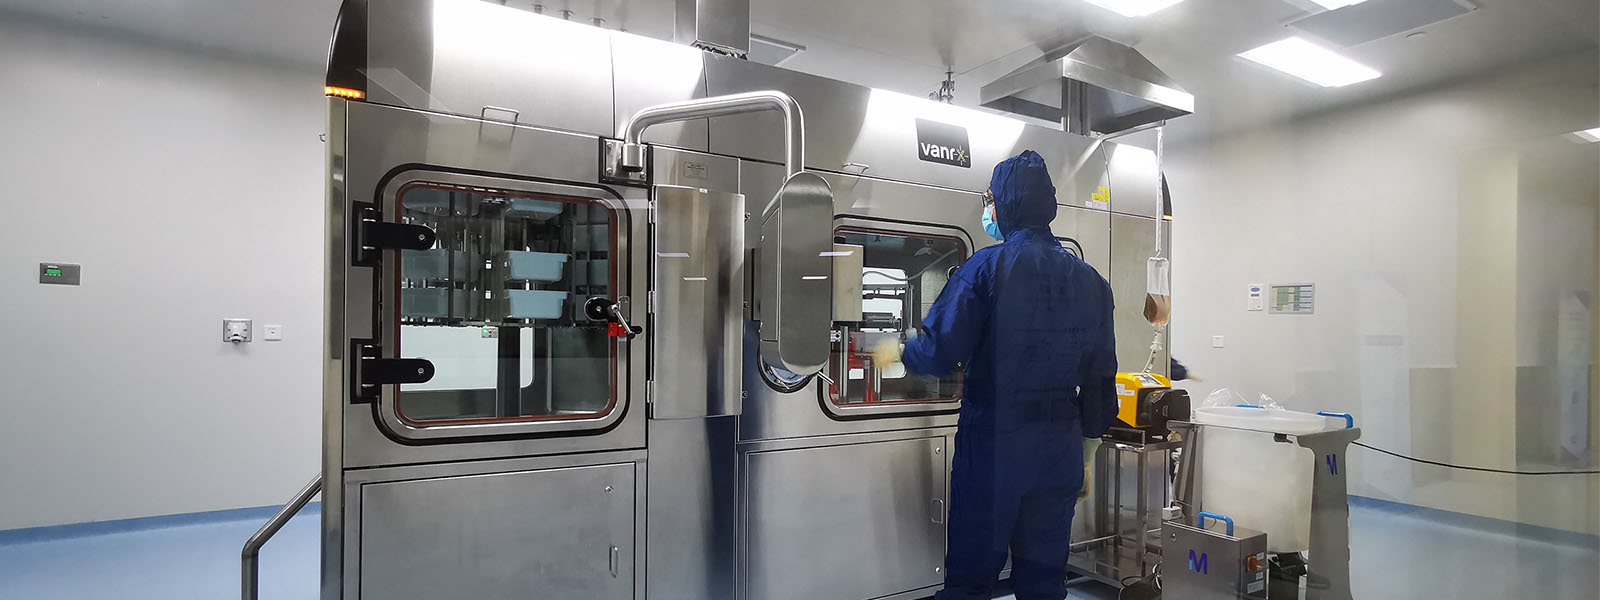 WuXi Biologics reached its first GMP batch release 15 months after purchasing the SA25 Aseptic Filling Workcell.